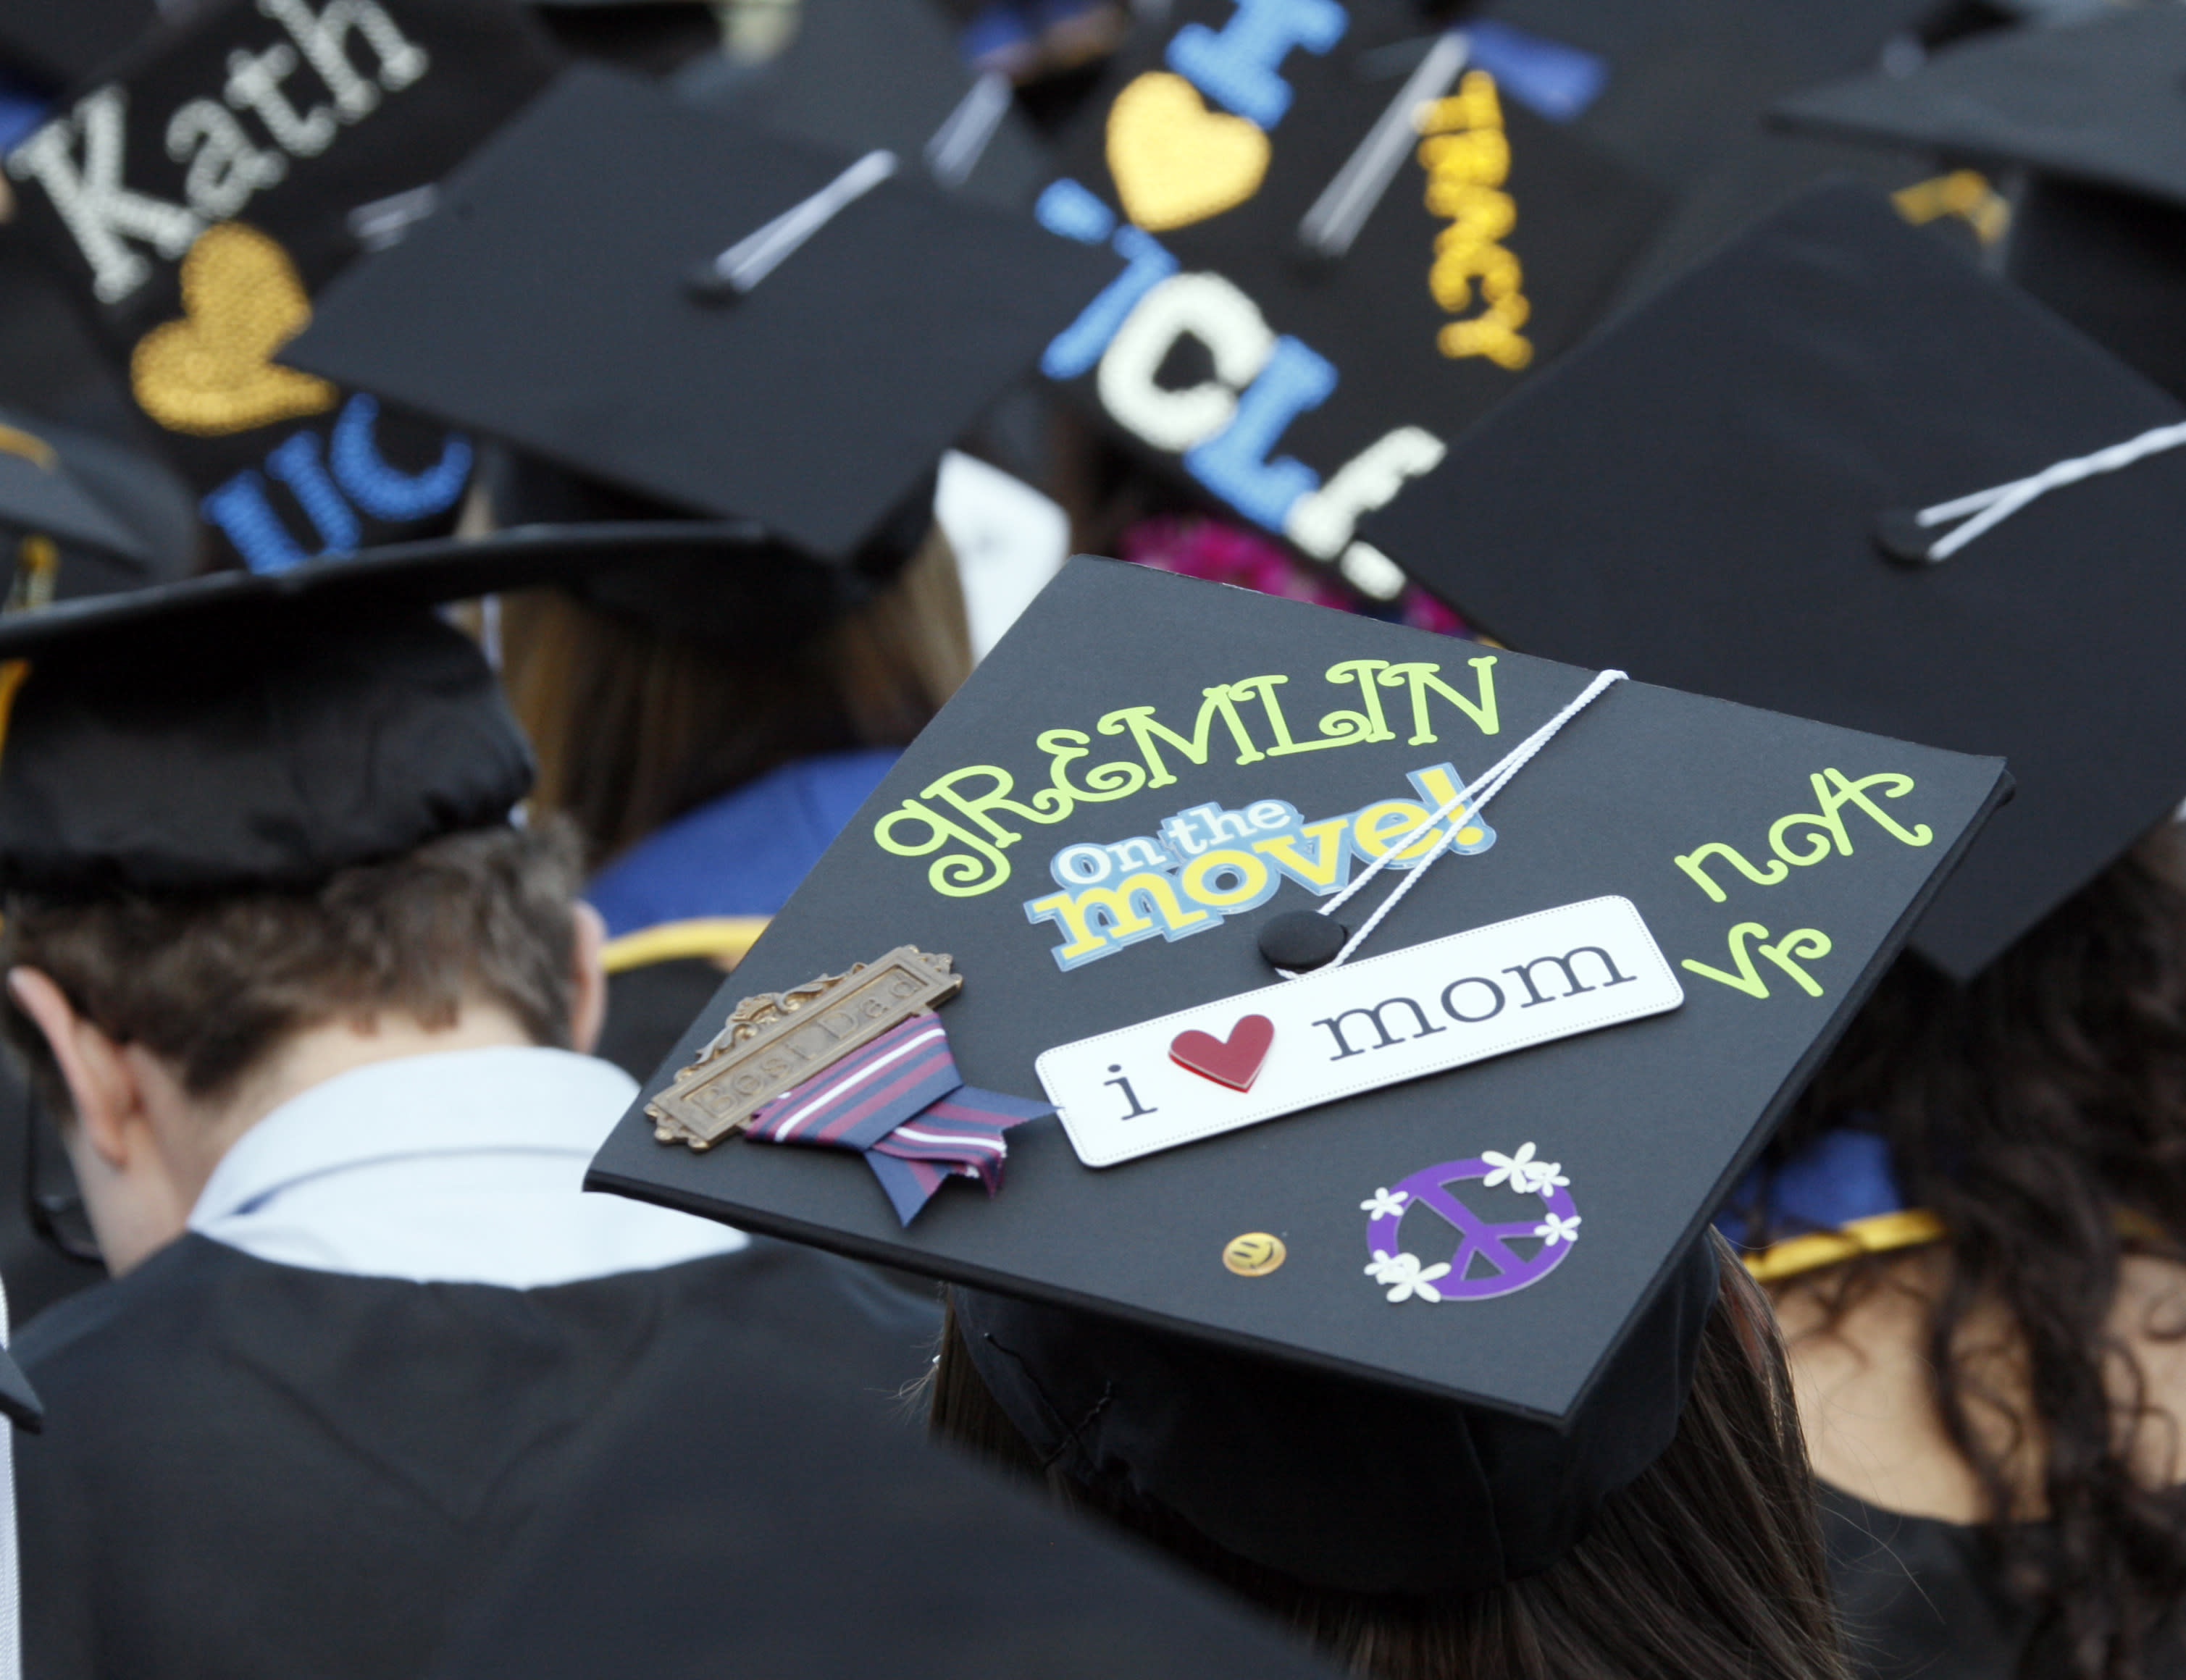 To divest or not to divest: College students on fossil fuel debate